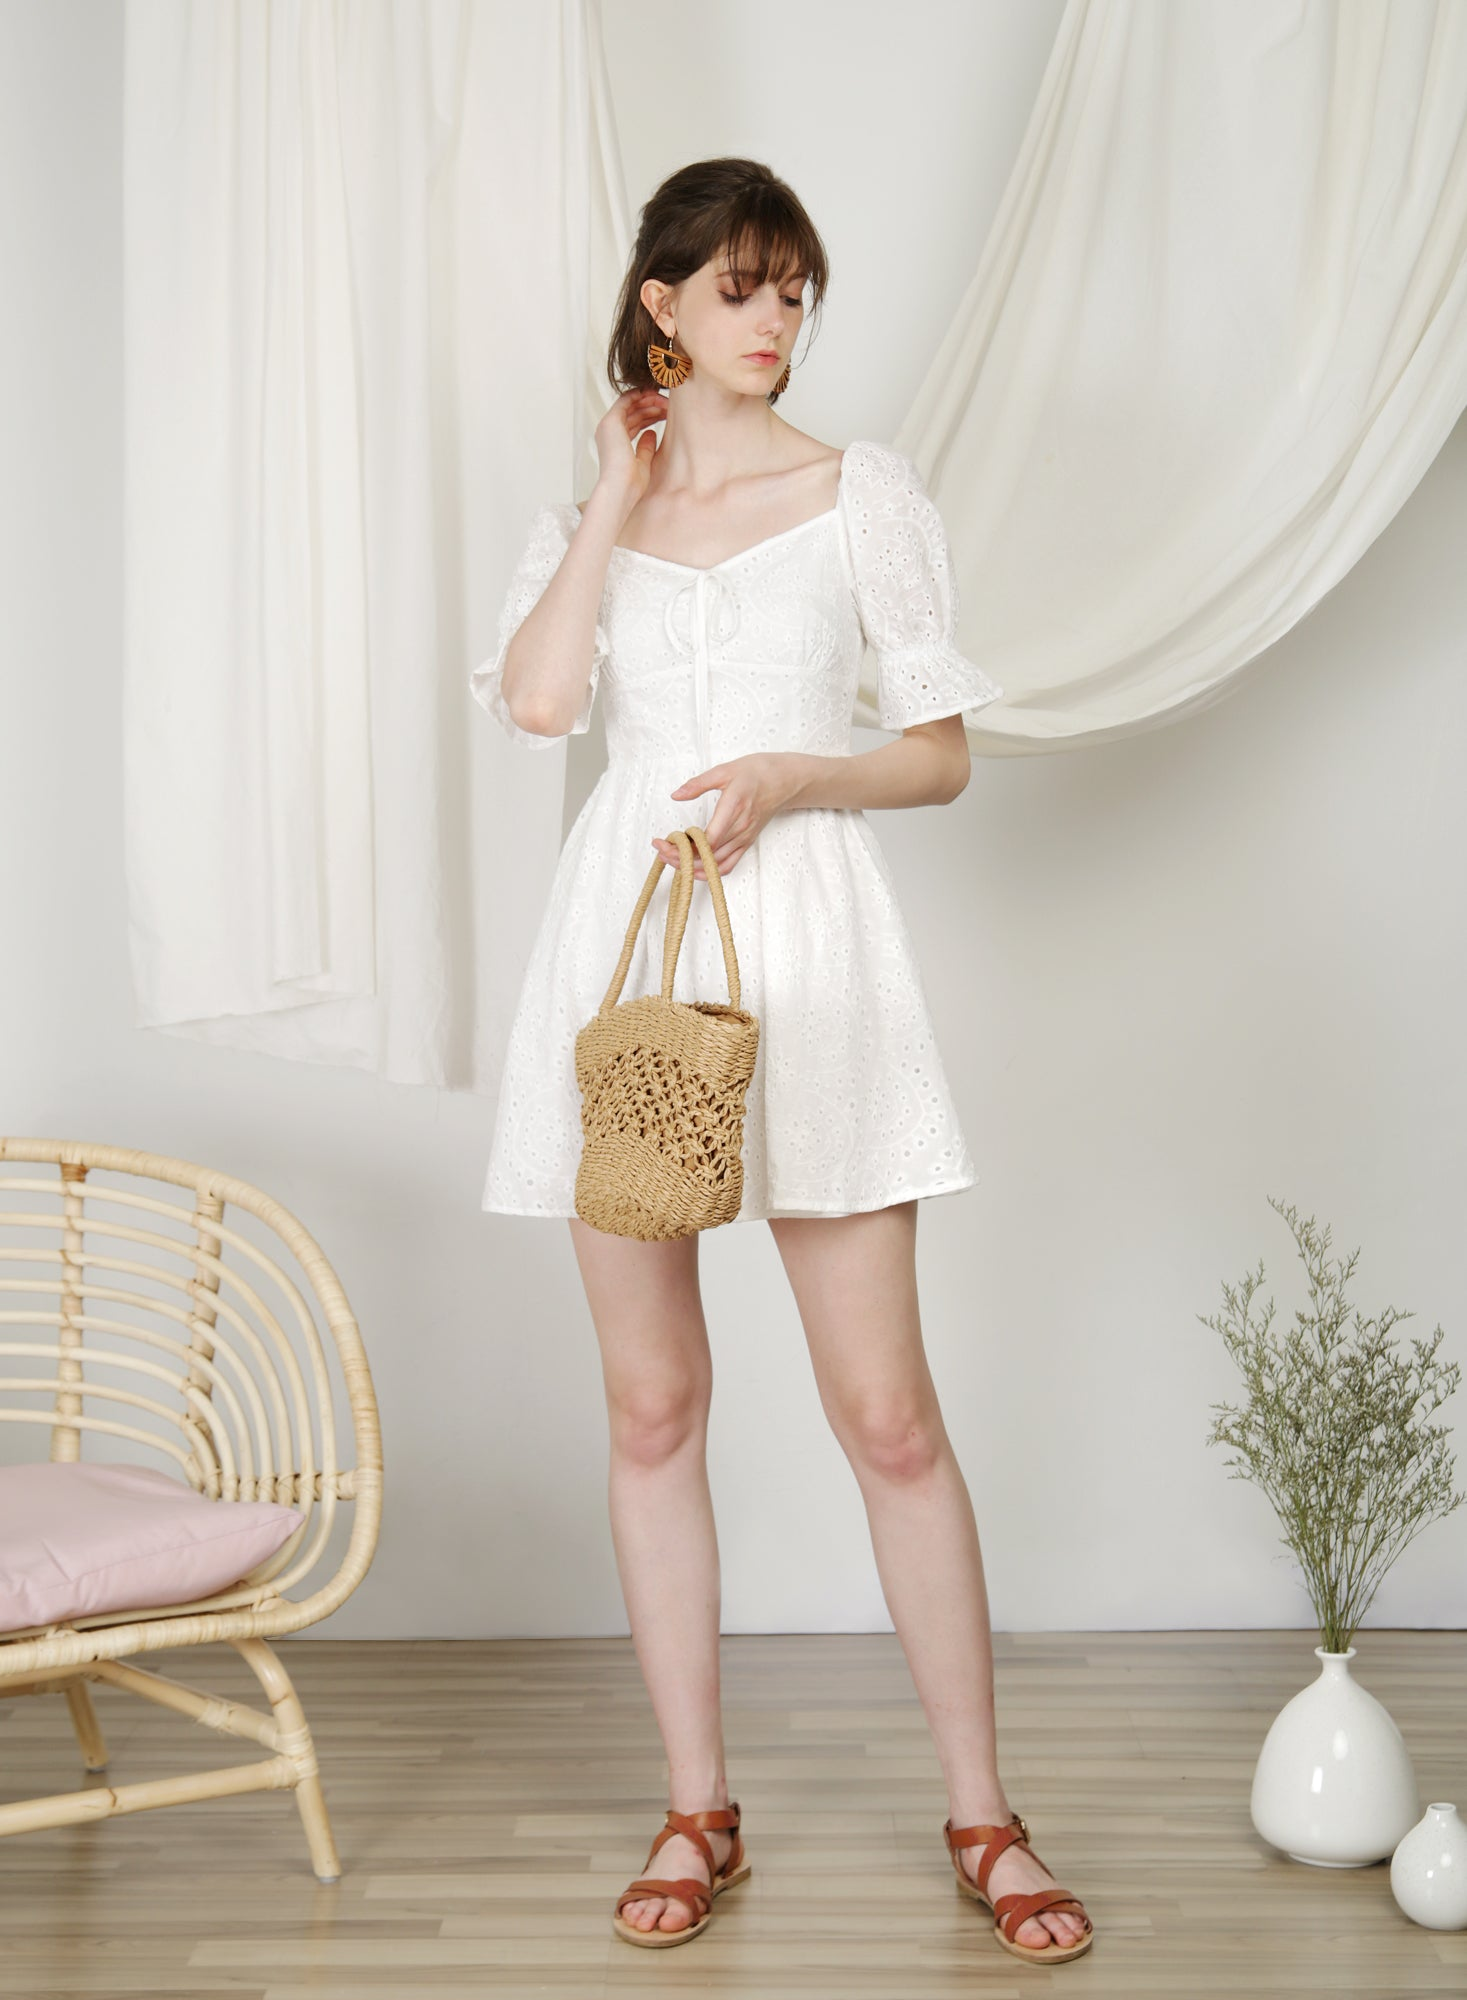 Cabin Puff Sleeves Dress (Eyelet) at $ 45.00 only sold at And Well Dressed Online Fashion Store Singapore